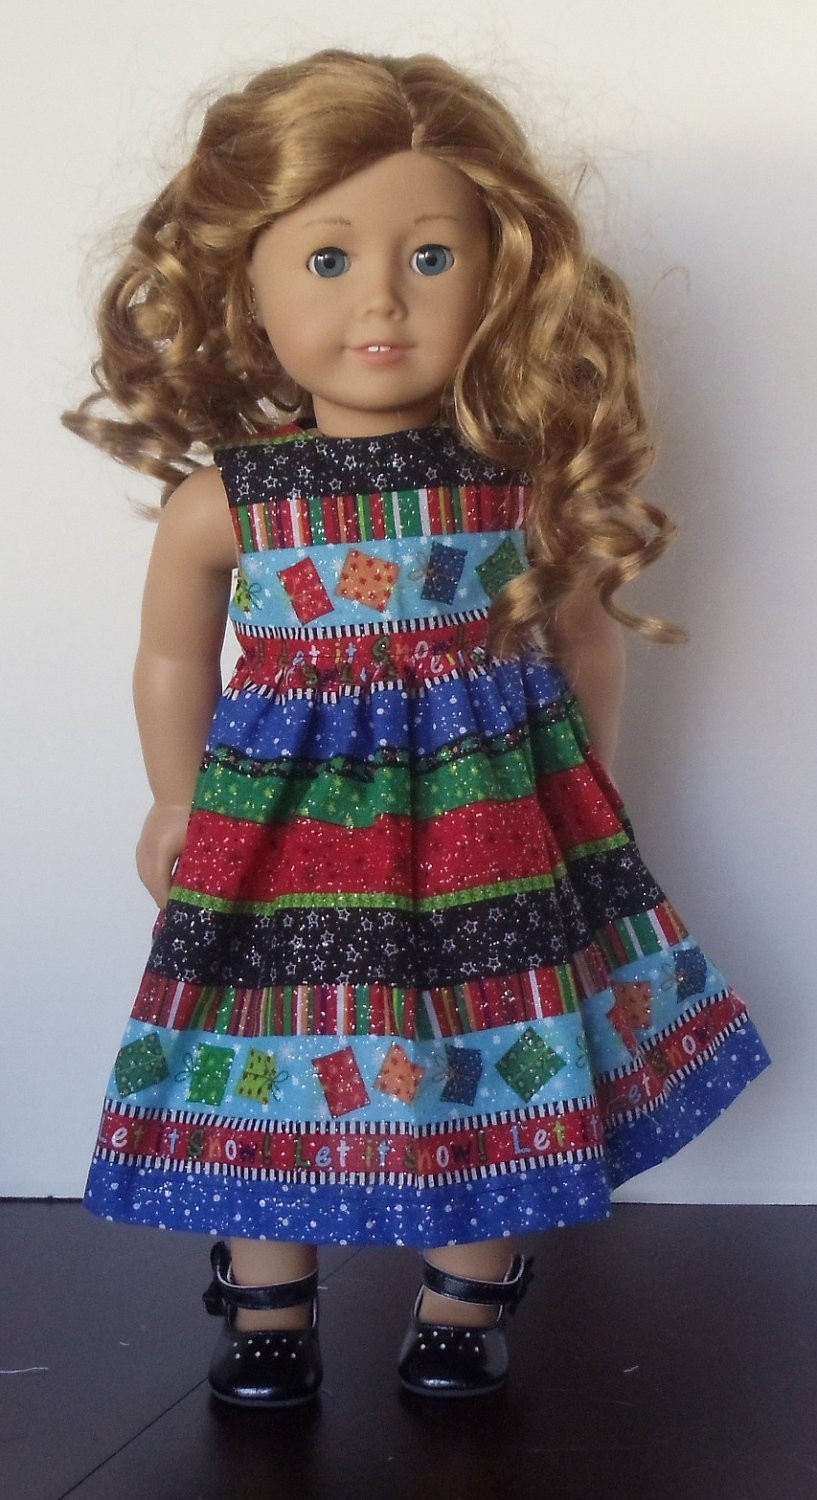 Camelot s Treasures American Girl Doll Clothes Sparkly